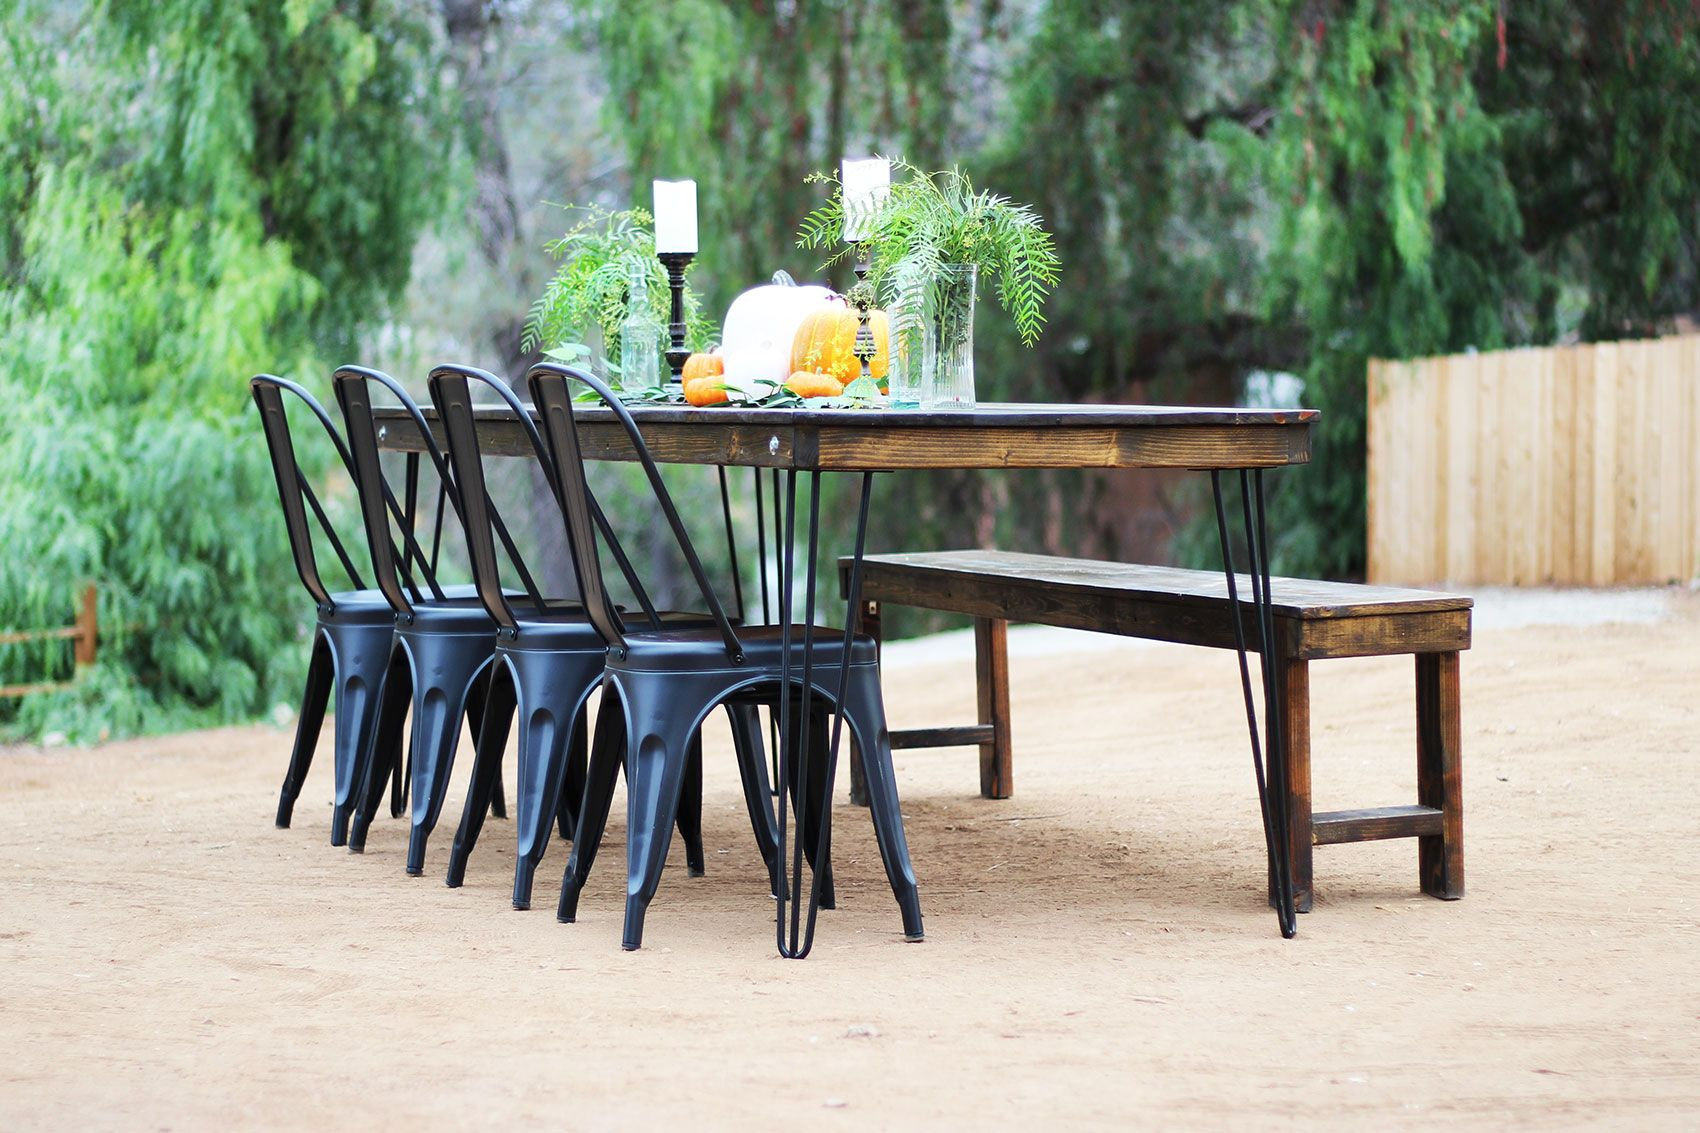 Farm table bench rentals in 2020 farm table with bench